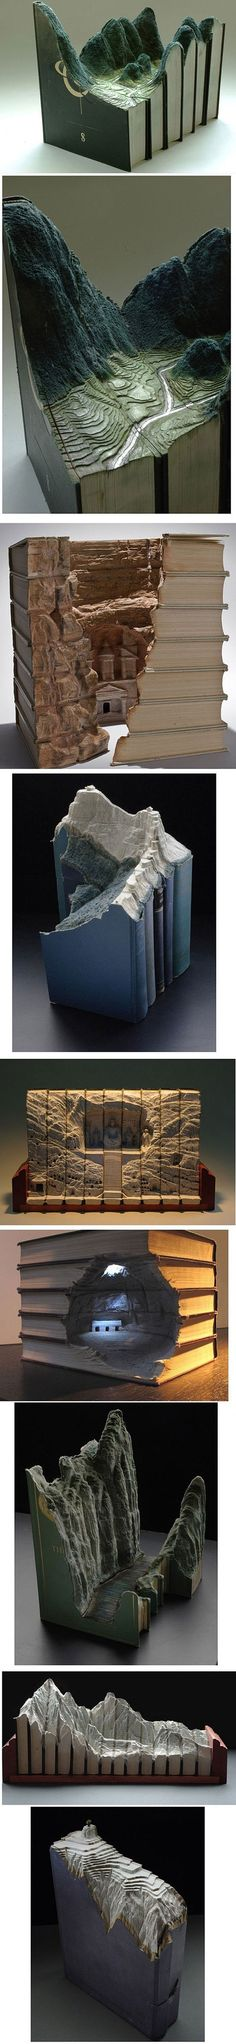 #funny books art carving